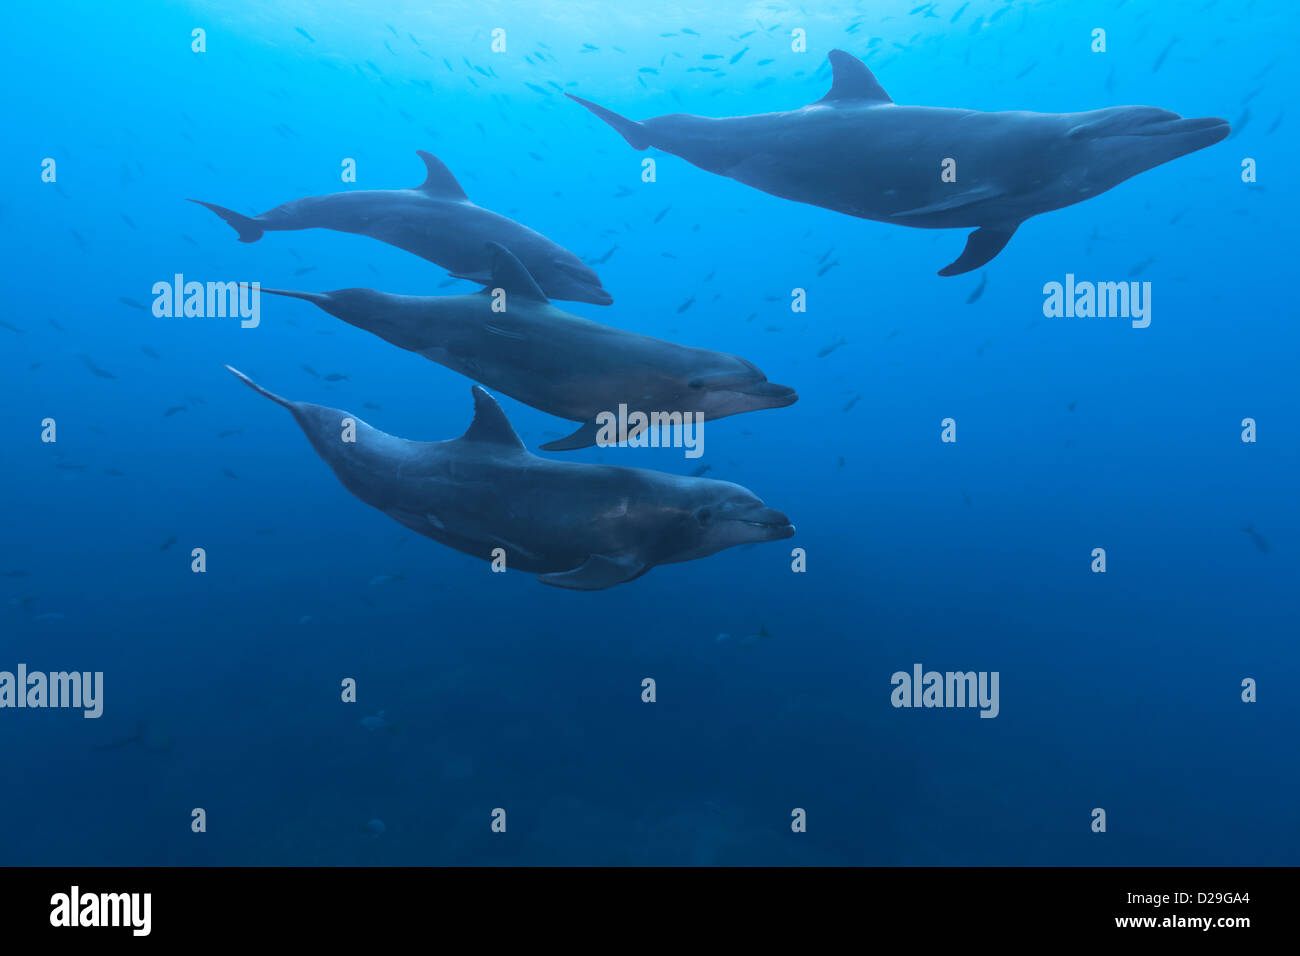 A pod of bottlenose dolphins (tursiops truncatus) swimming in waters of Archipielago de Revillagigedo, Las Cuevitas - Stock Image